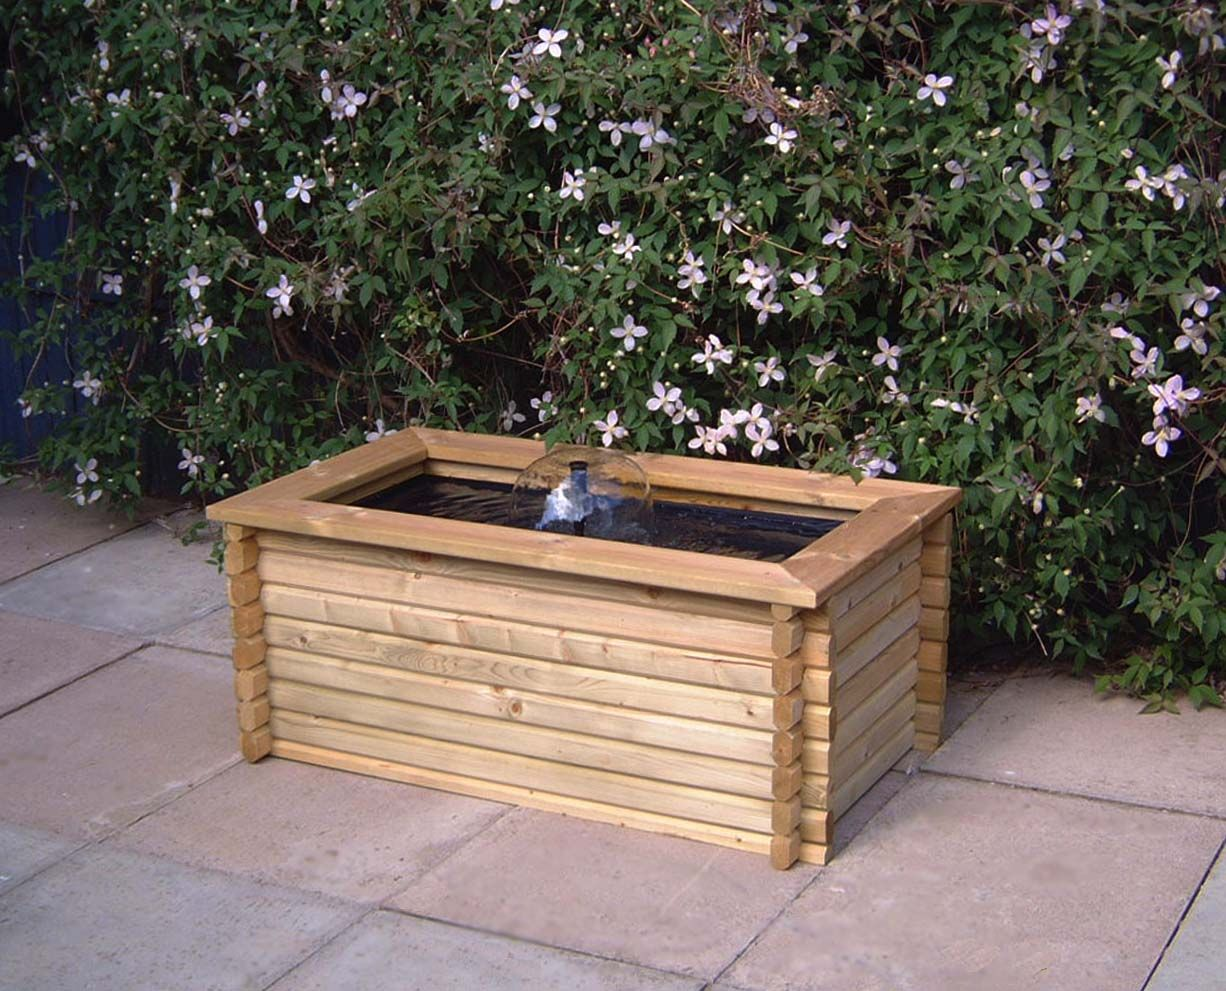 60 gallon rectangle pool water feature - Rectangle Pool With Water Feature